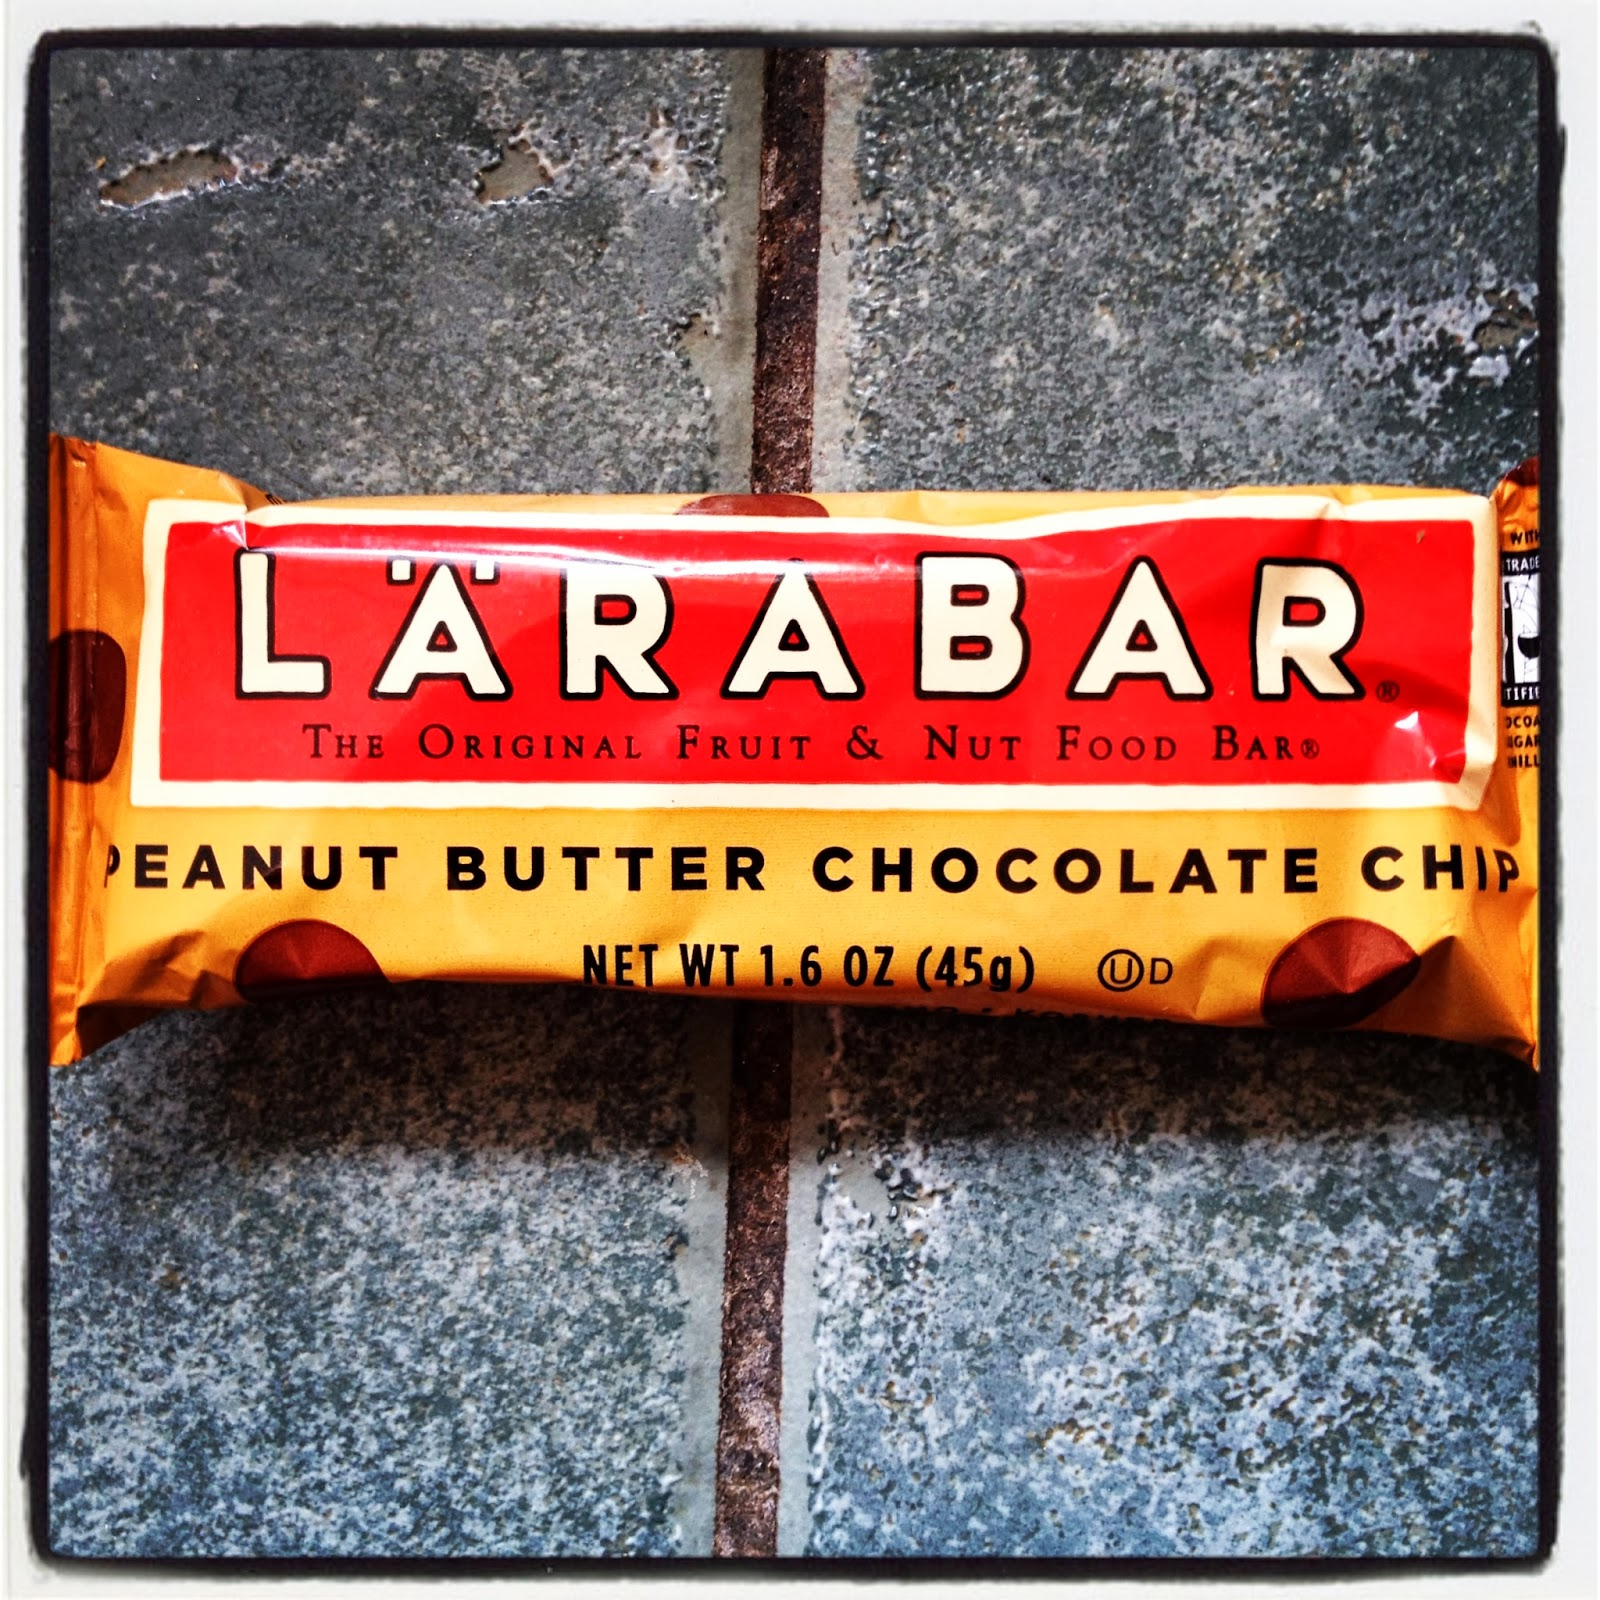 Vegan Snack Peanut Butter Chocolate Chip Larabar Kosher Gluten Free